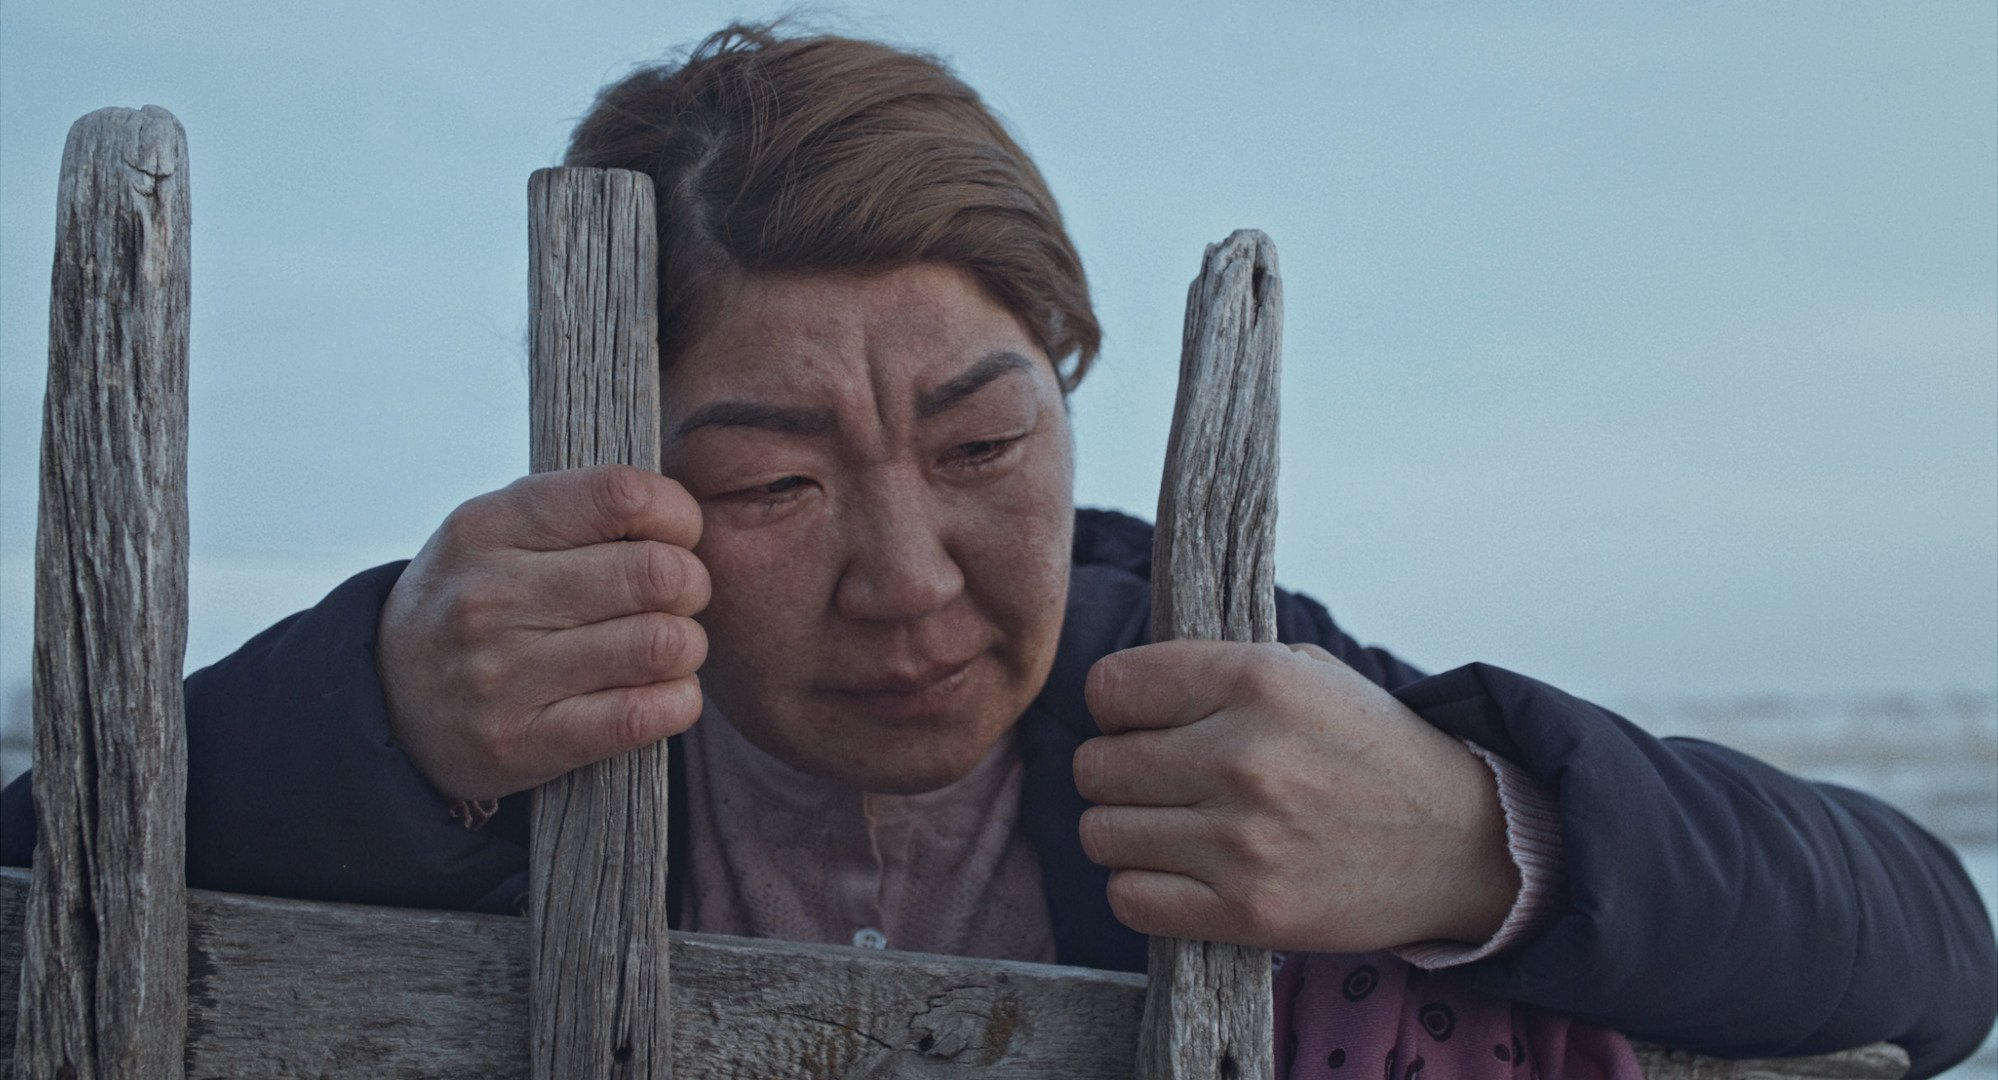 Mariam: the true story of a Kazakh woman's self-discovery after her husband's sudden disappearance